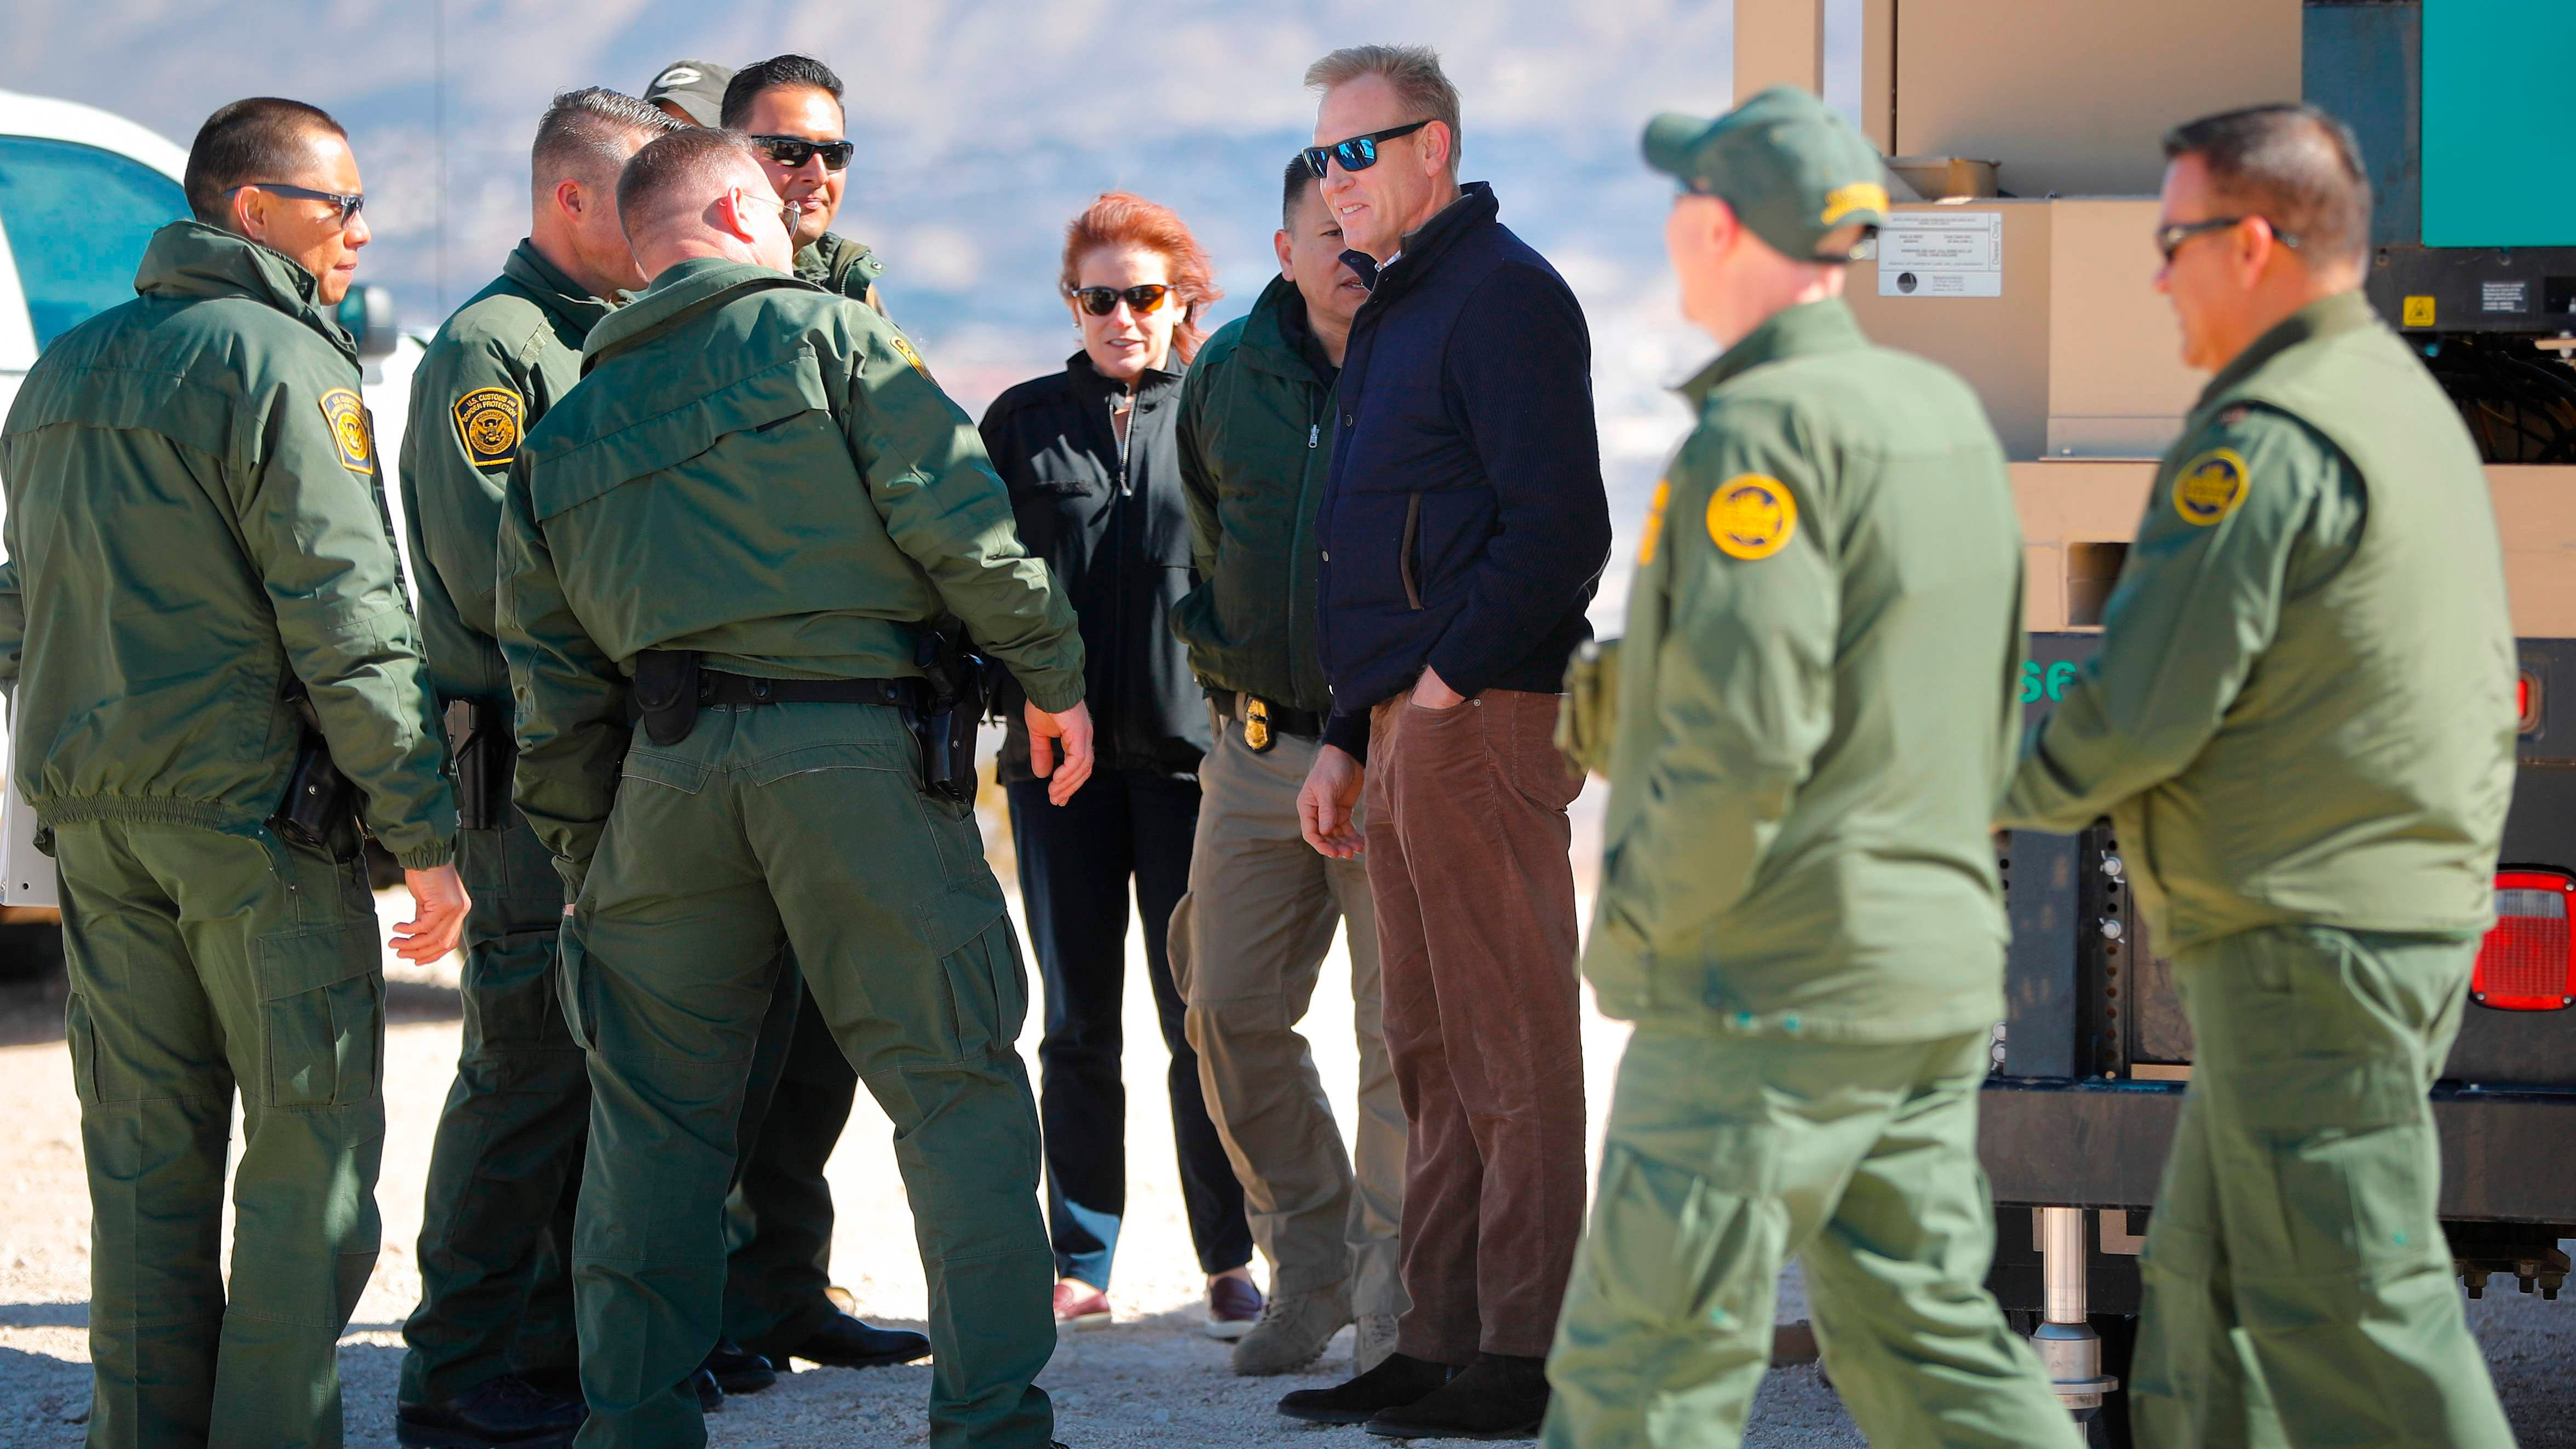 Acting US Secretary of Defense Patrick Shanahan (C) meets with Border Patrol Agents during a tour of the US-Mexico border at Santa Teresa Station in Sunland Park, New Mexico, Saturday, February 23, 2019.